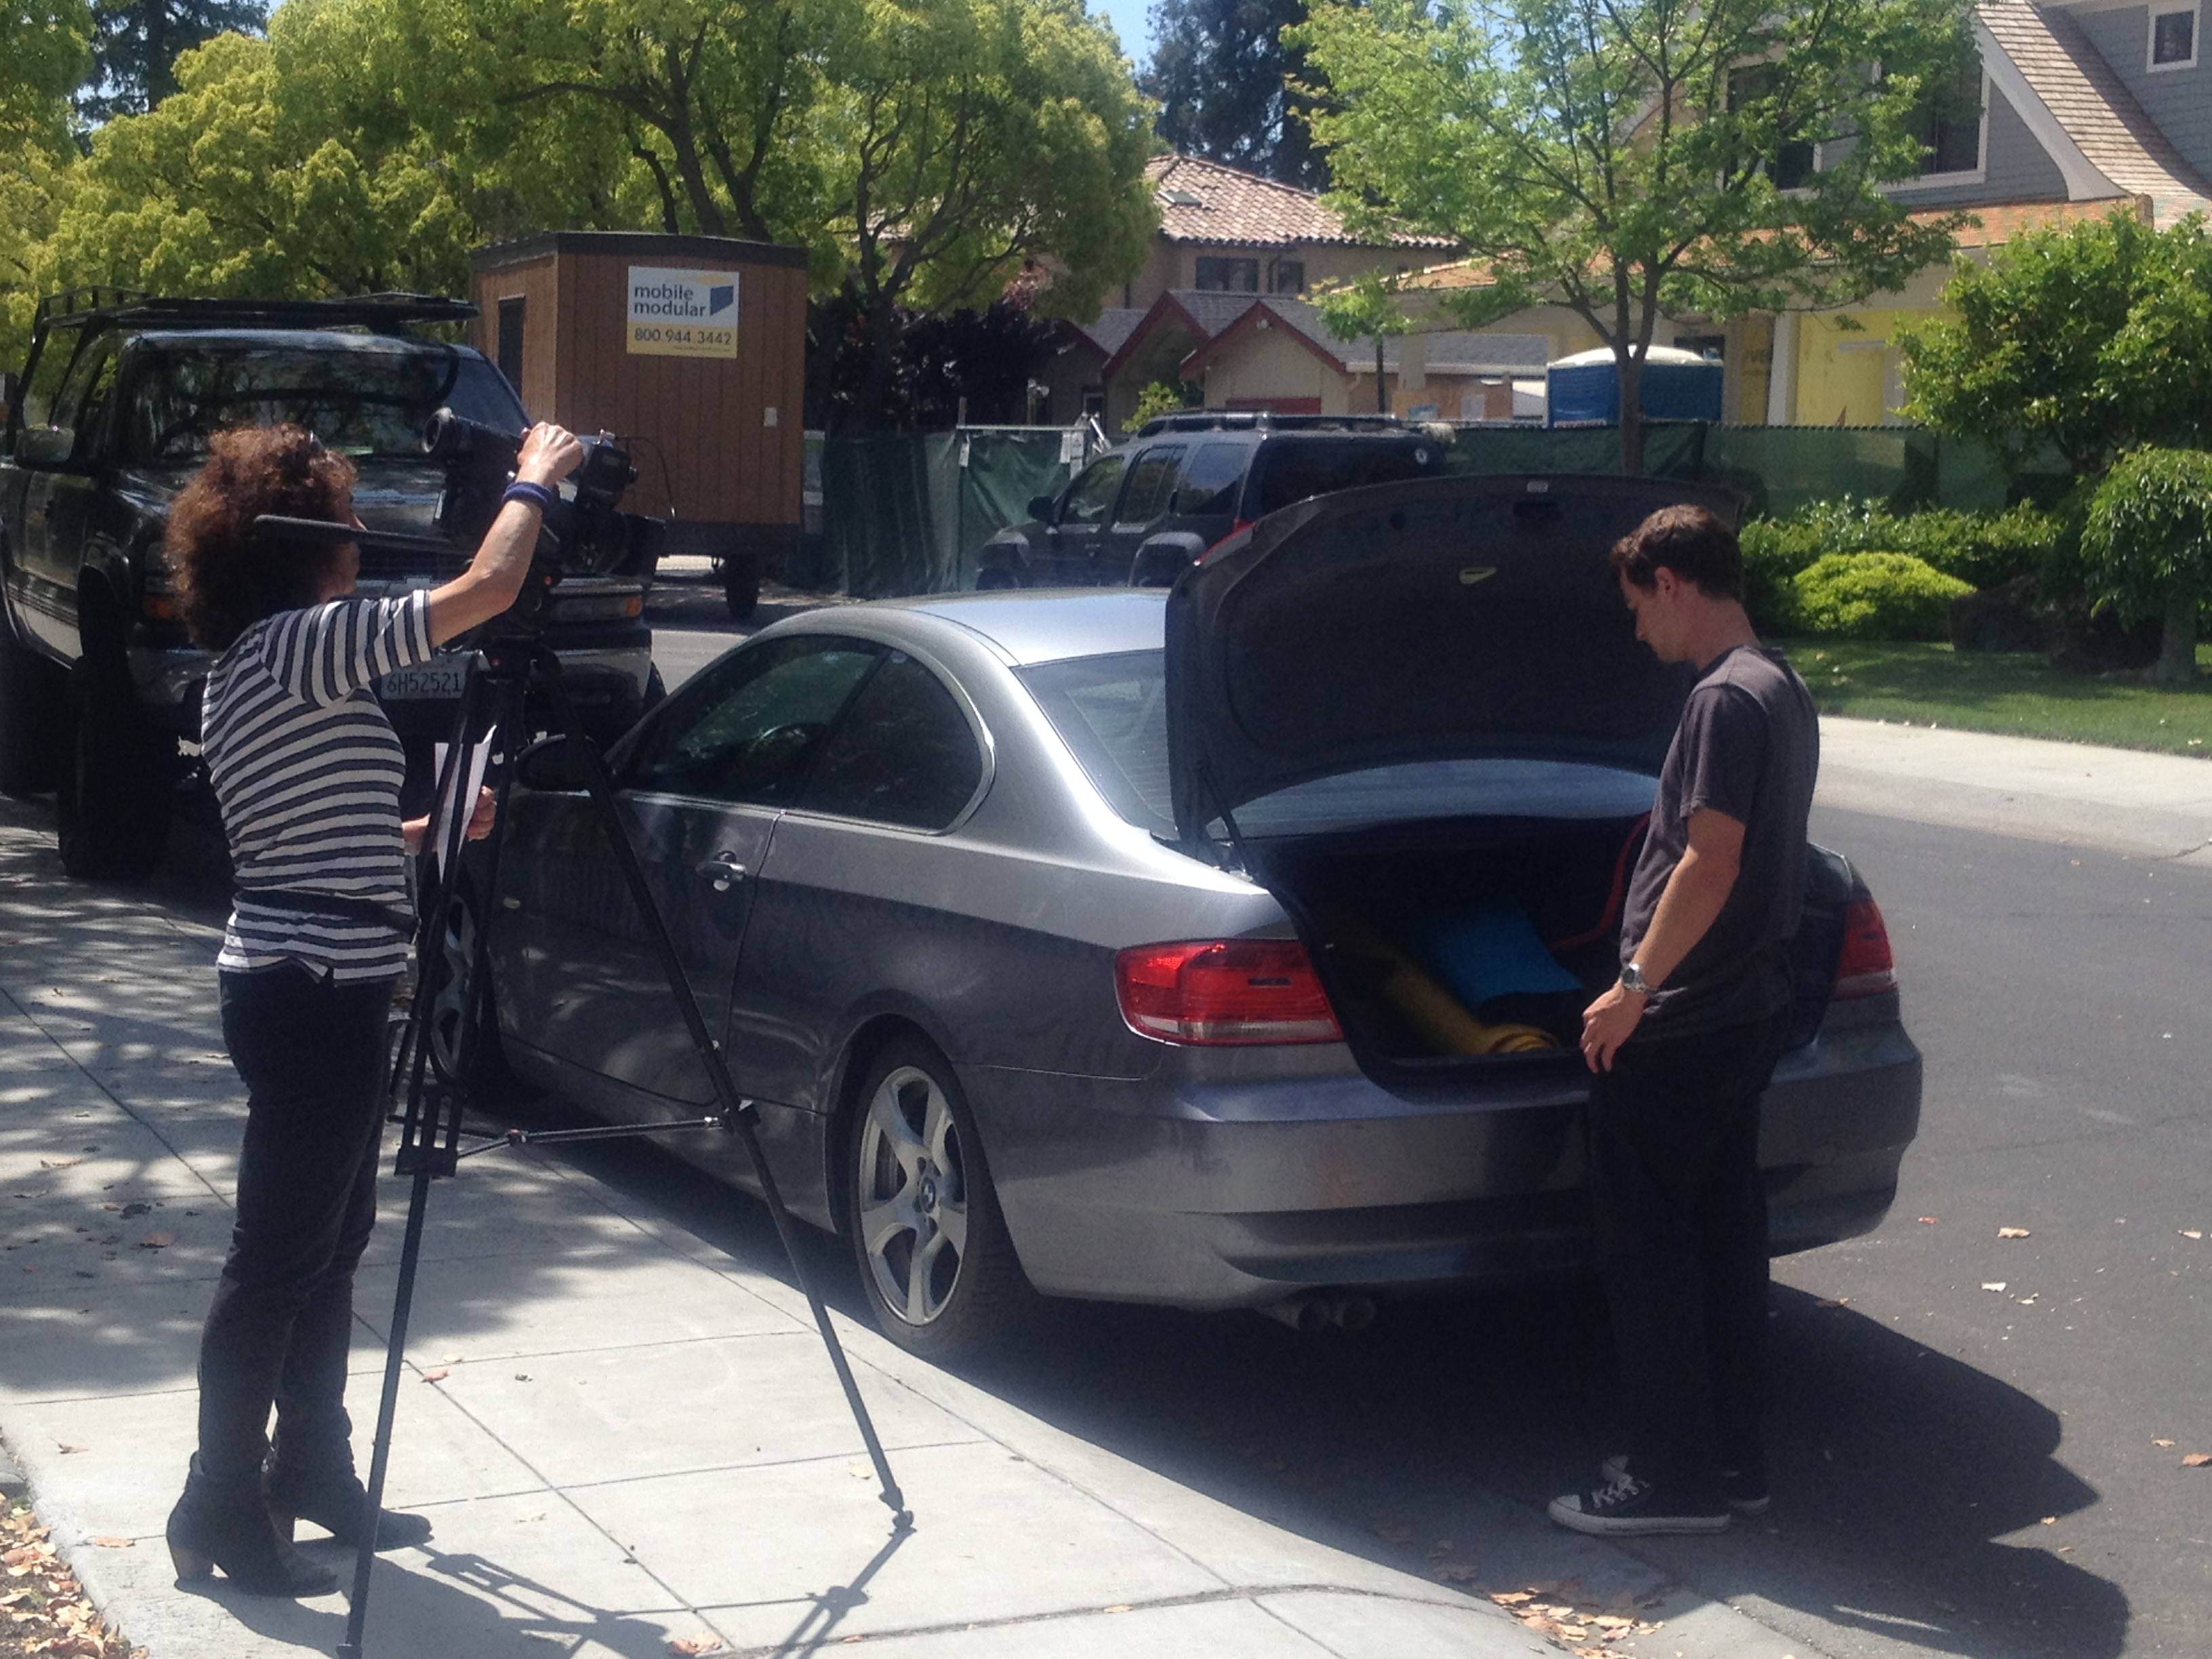 Bureau of automotive repair to be featured on kgo tv for Bureau automotive repair